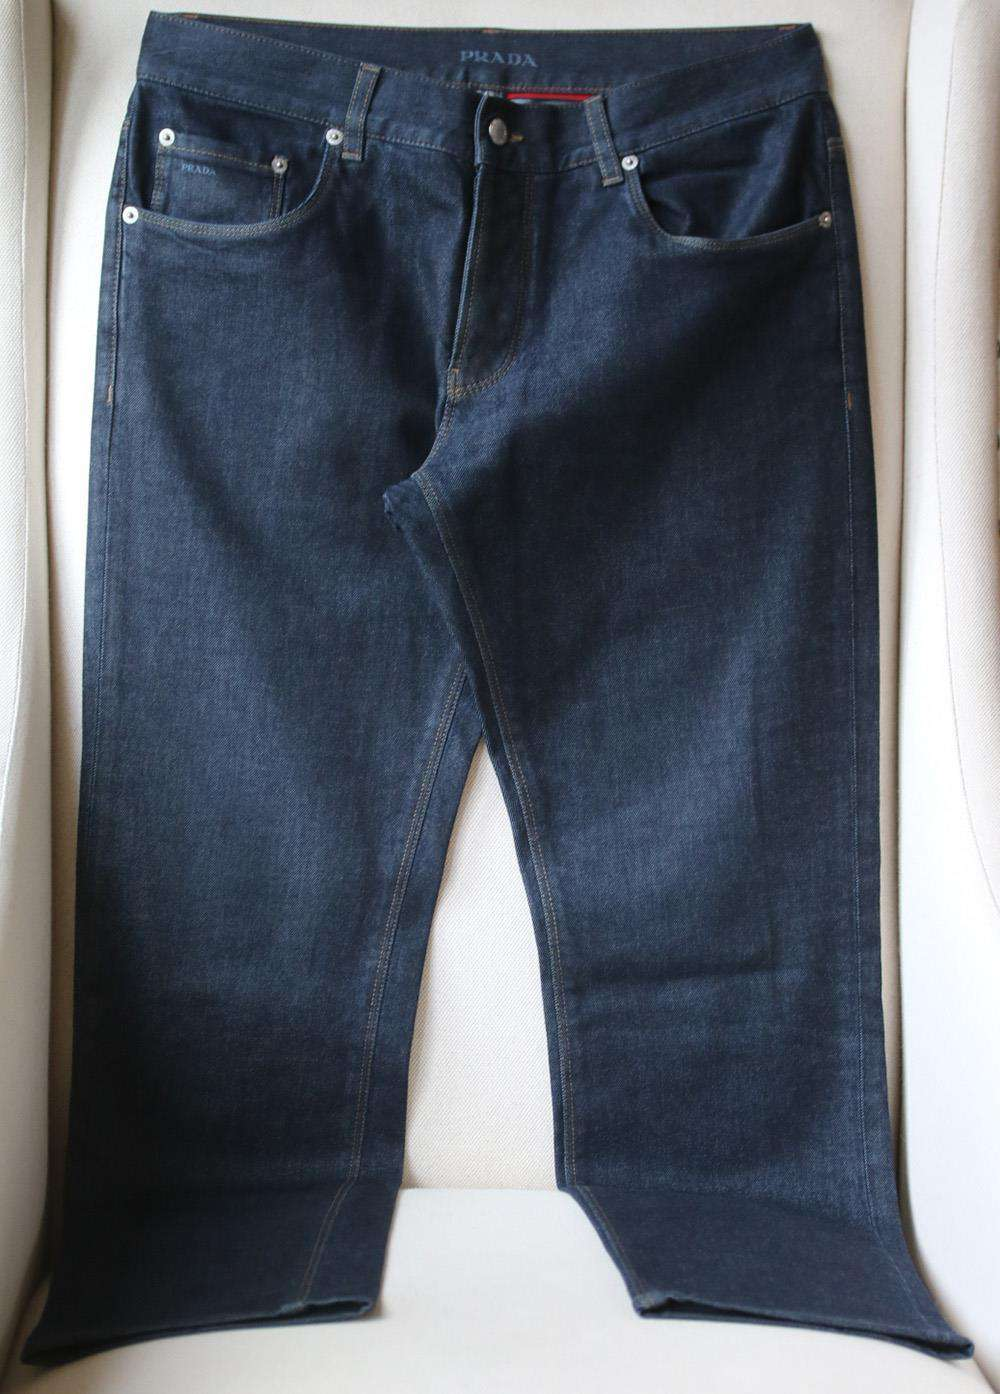 PRADA TAPERED FIT DENIM JEANS IT 48 UK/US 32